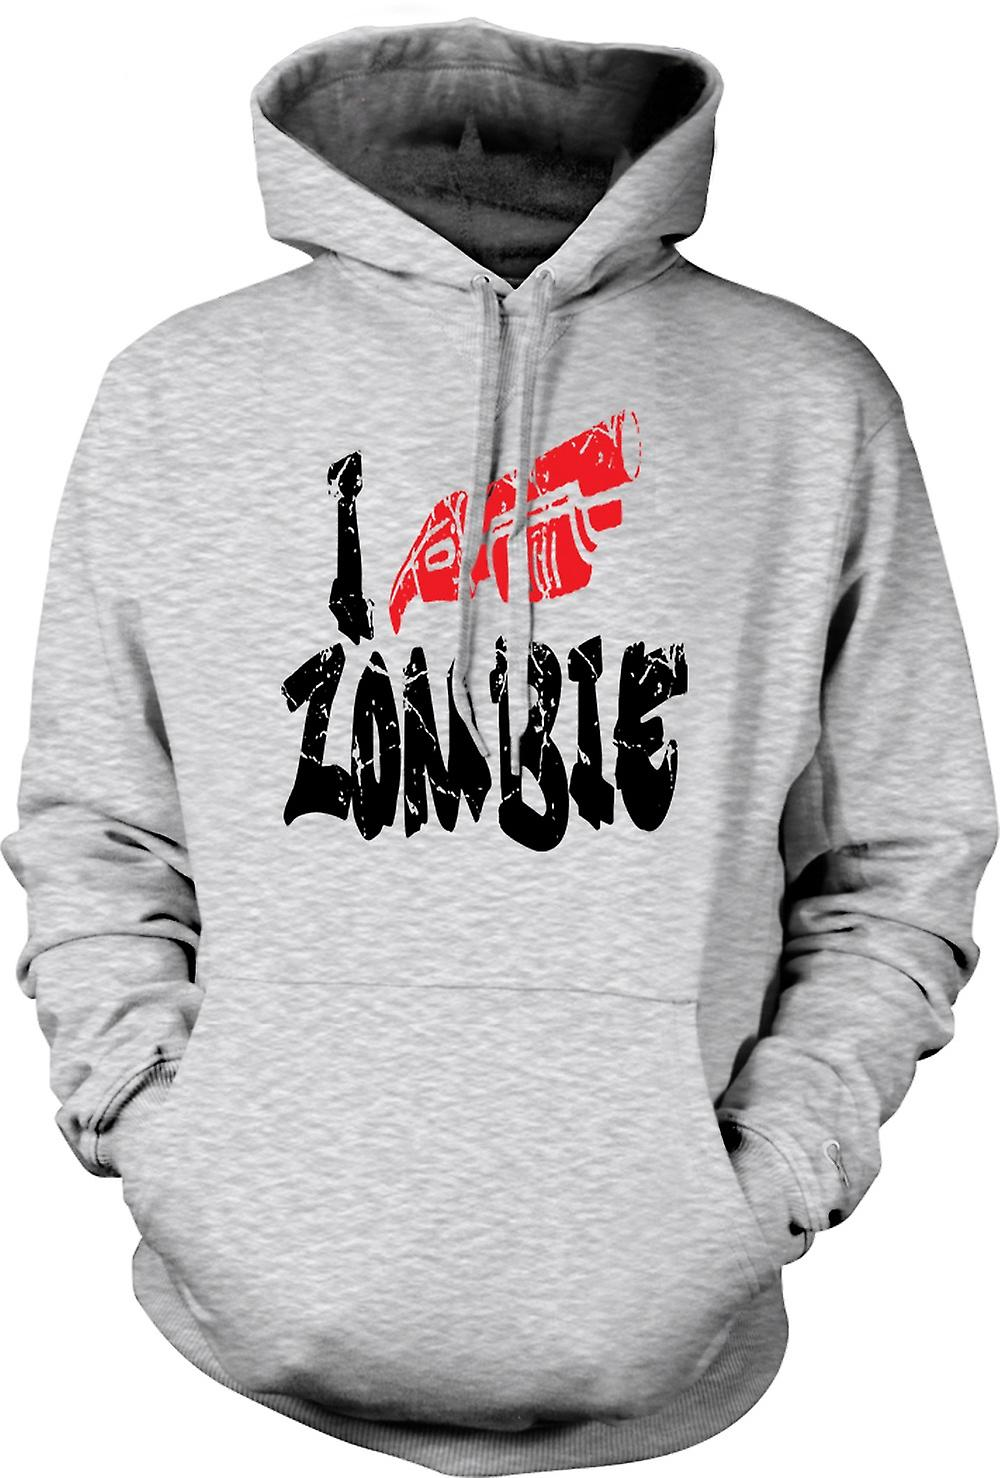 Mens Hoodie - I Shoot Zombies - Funny